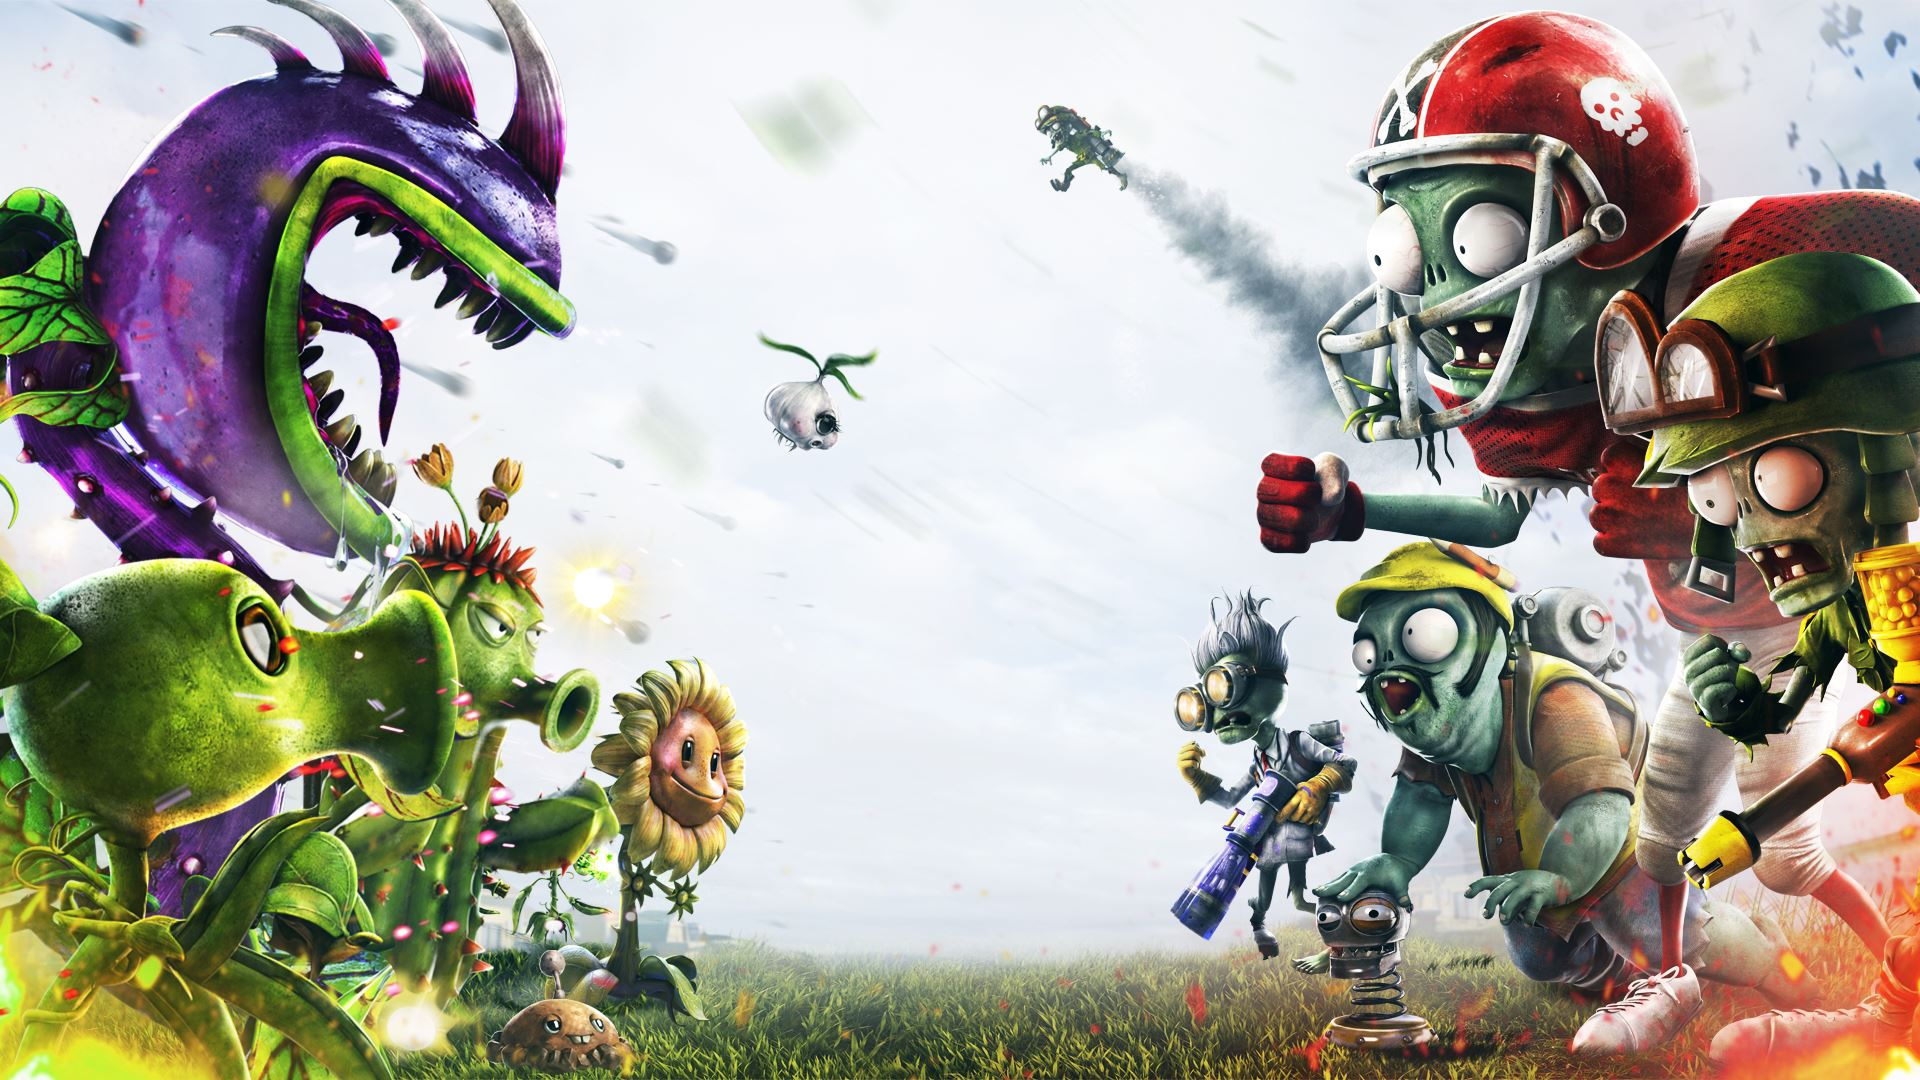 plants vs. zombies garden warfare wallpaper full hd wallpaper and